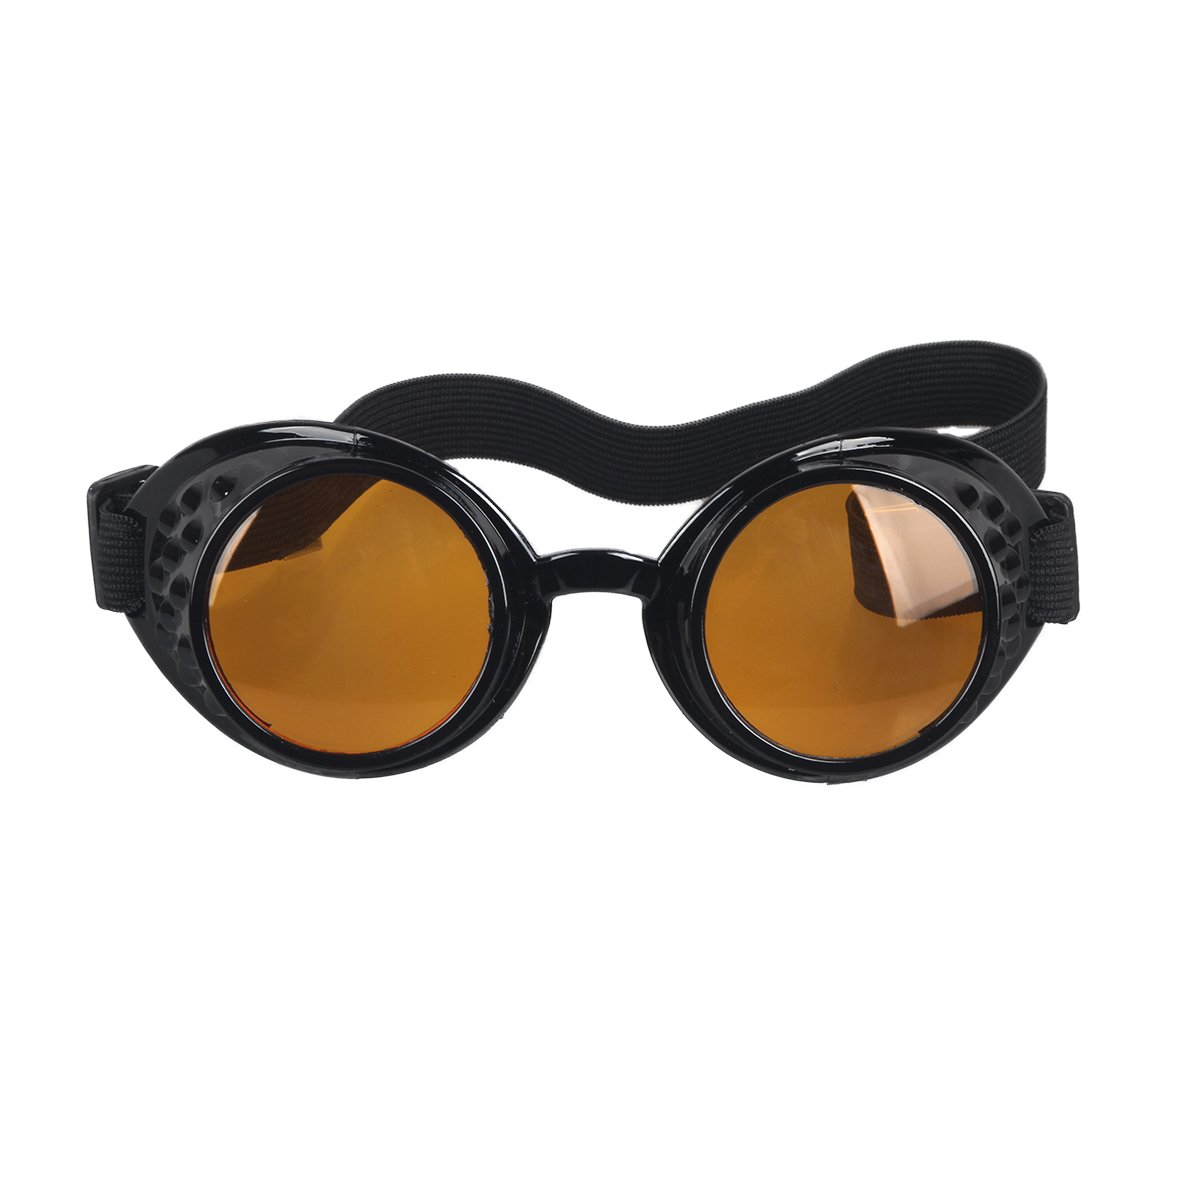 OMG_Shop Vintage Victorian Steampunk Welding Cyber Punk Gothic Cosplay HS Goggles Glass Black Frame (Orange Lens)